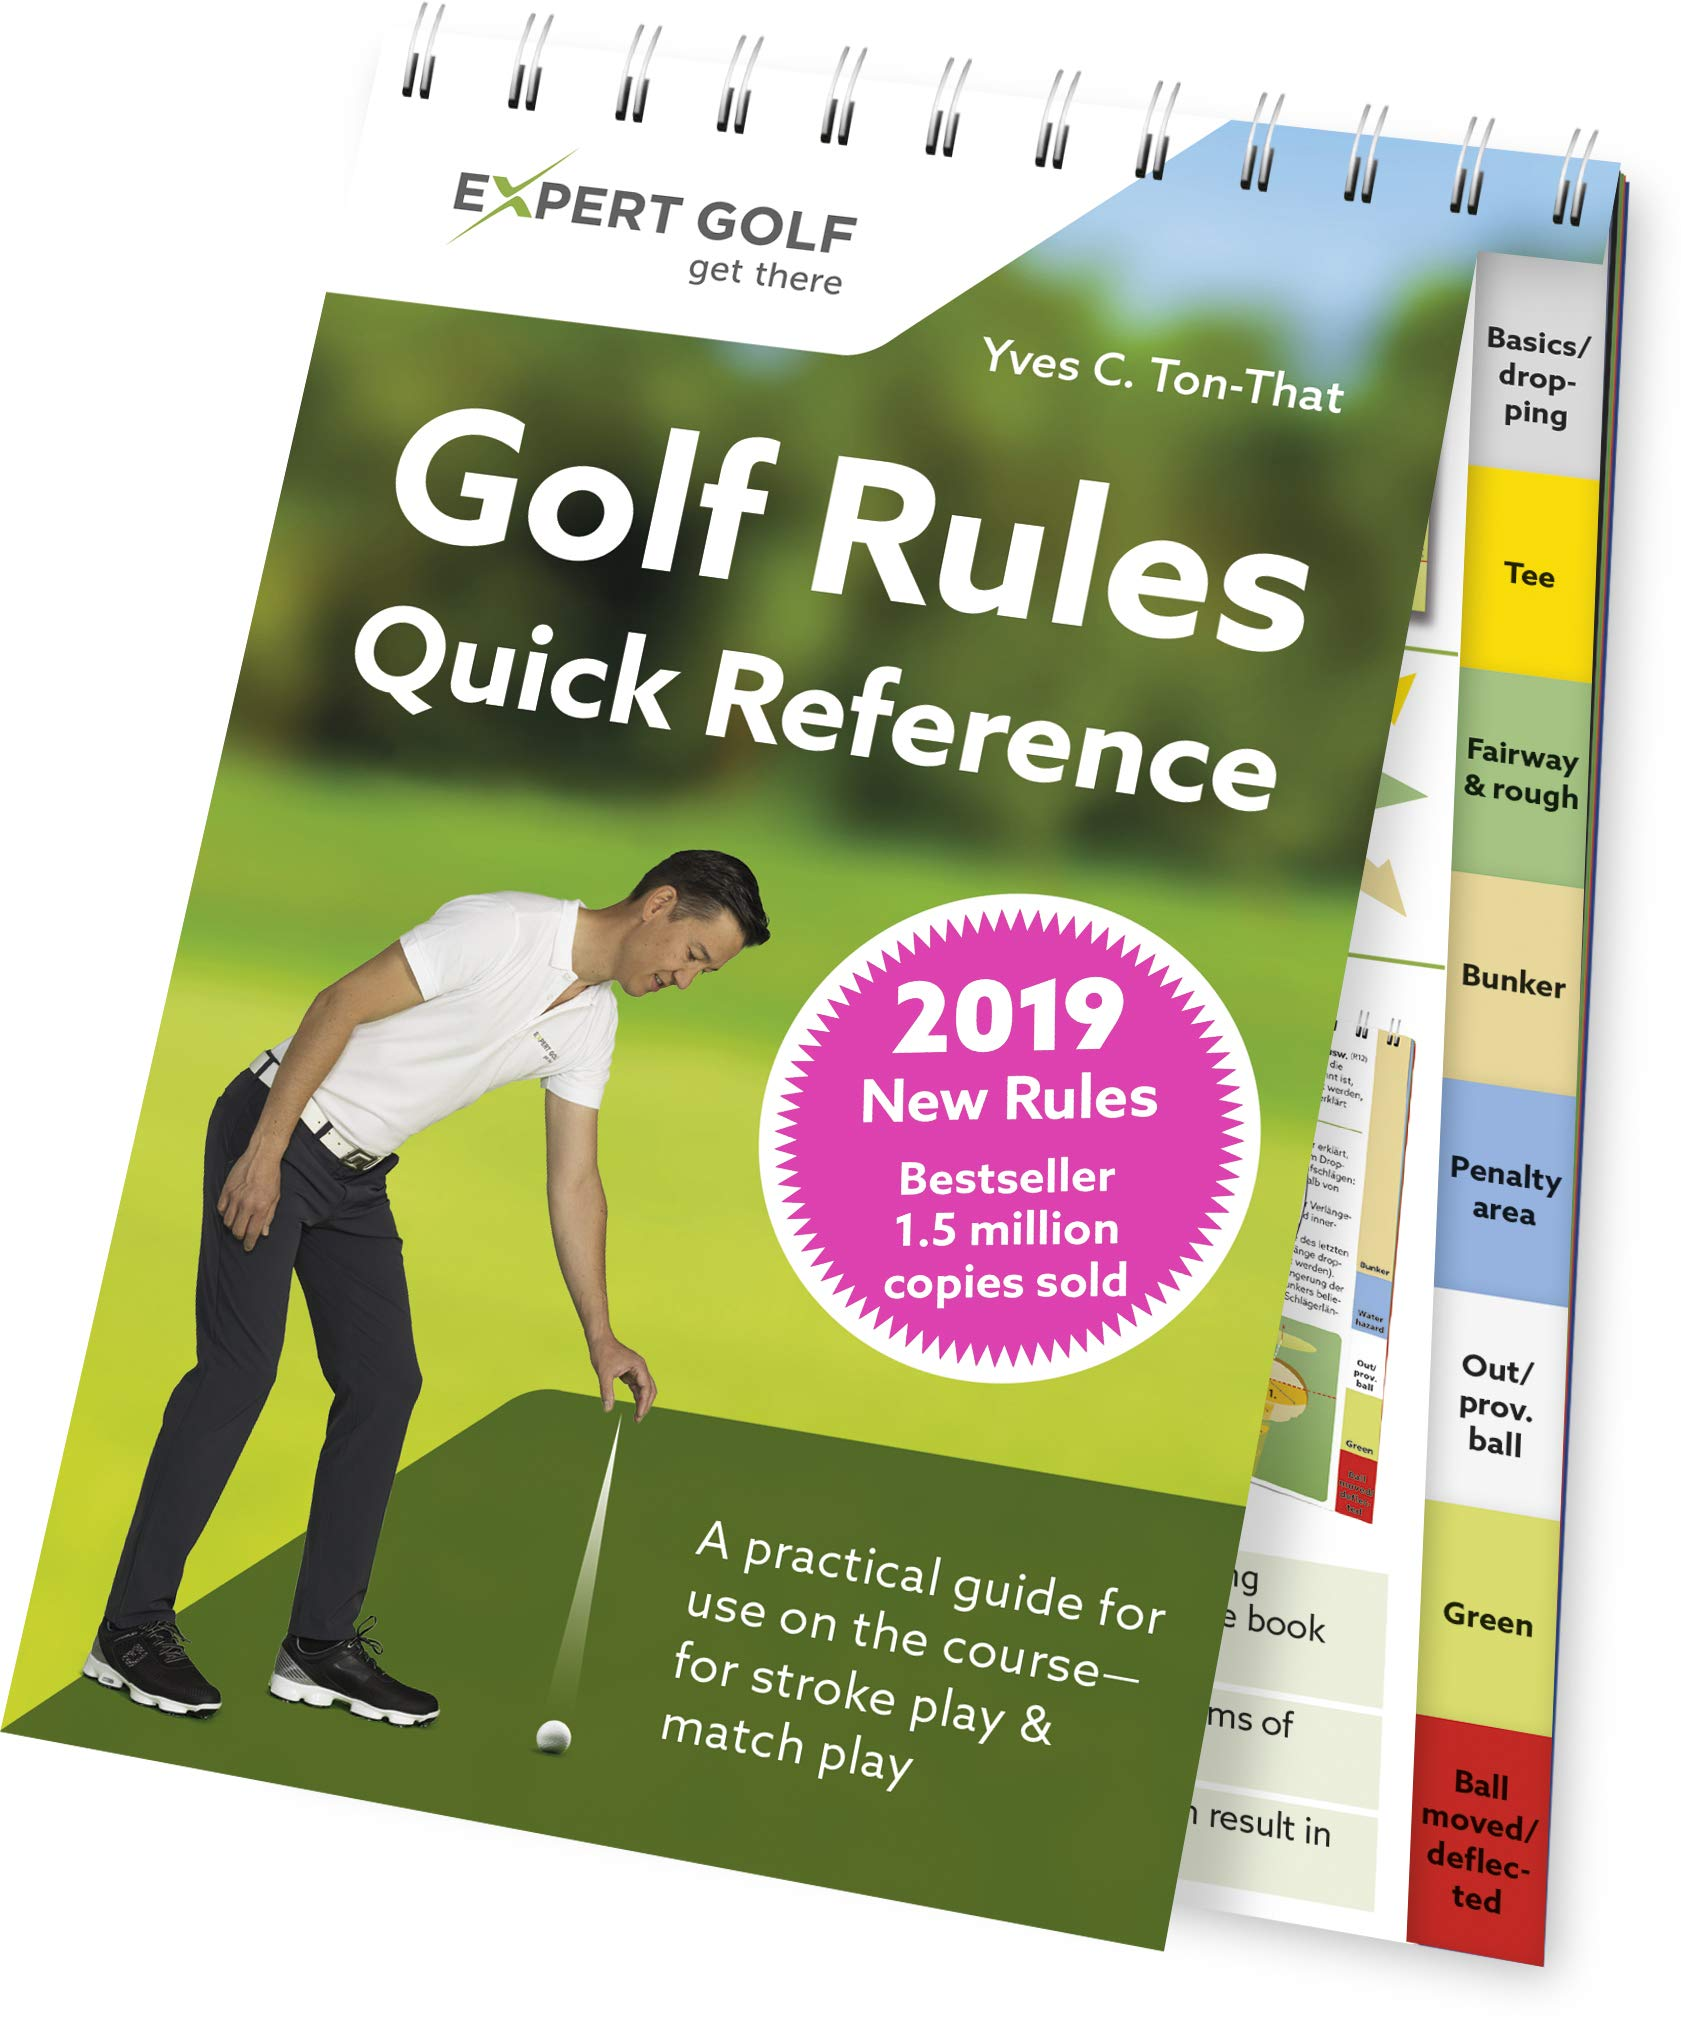 Golf Rules Quick Reference 2019 The Practical Guide For Use On The Course For Stroke Play Match Play Ton That Yves C 9783906852157 Amazon Com Books